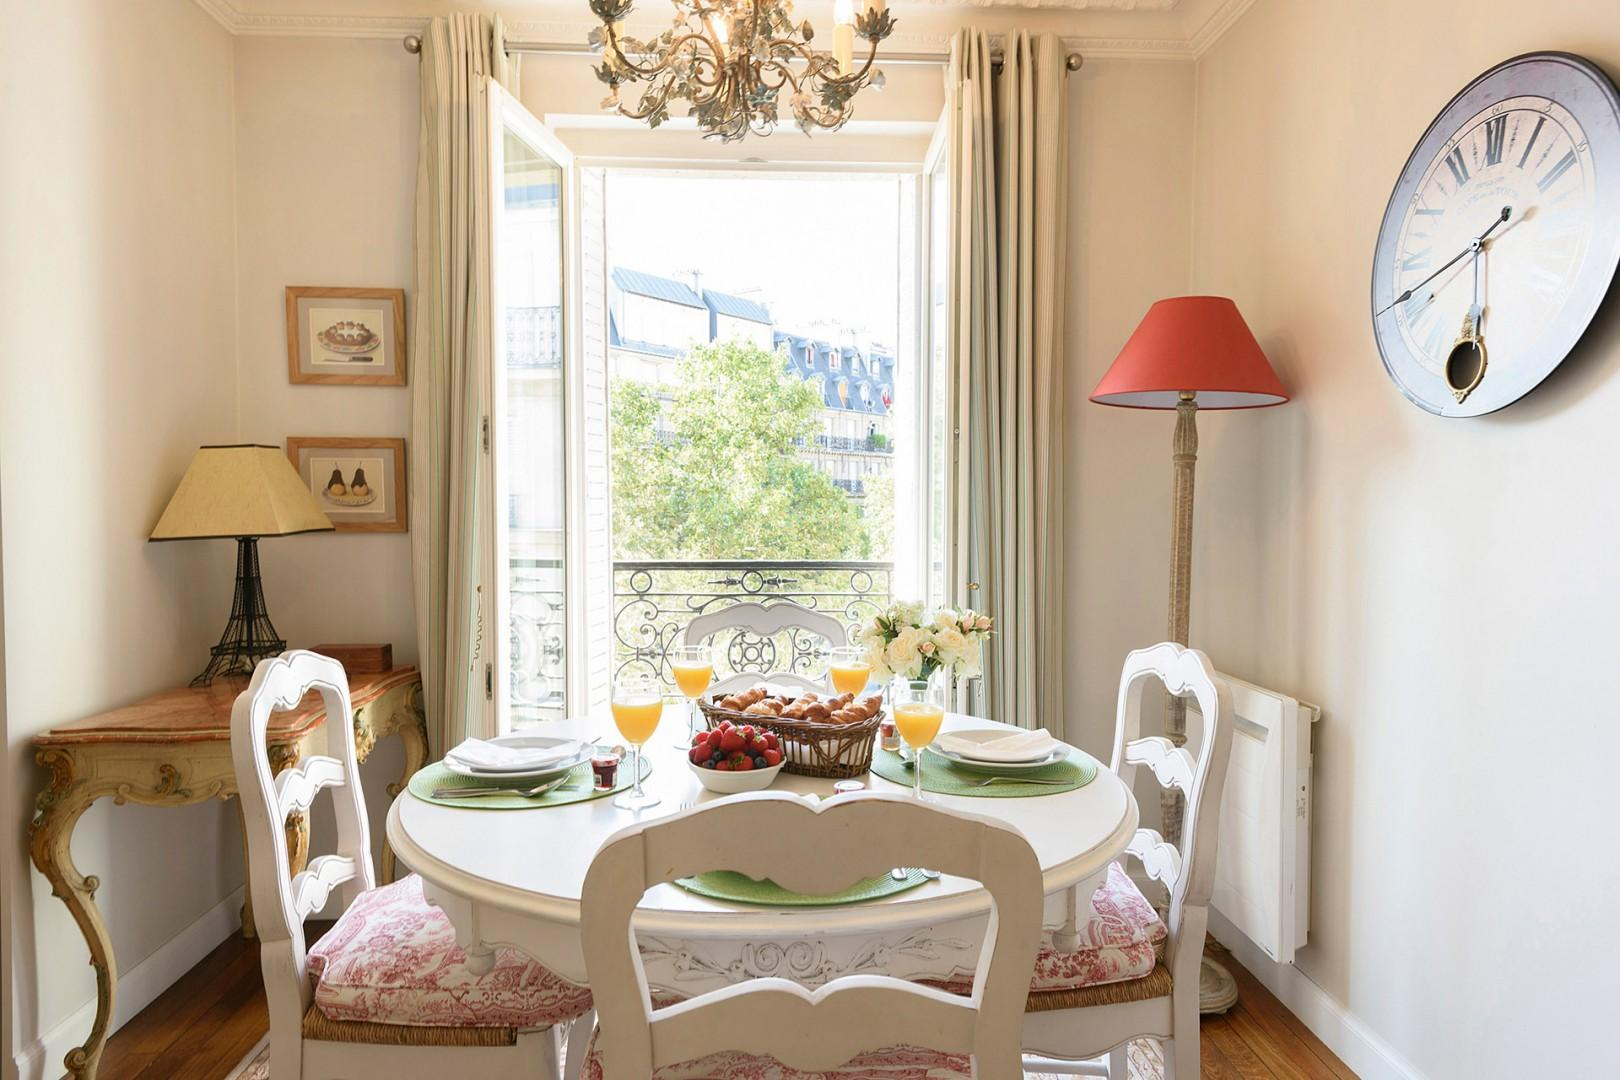 French windows and beautiful views continue in the dining area.